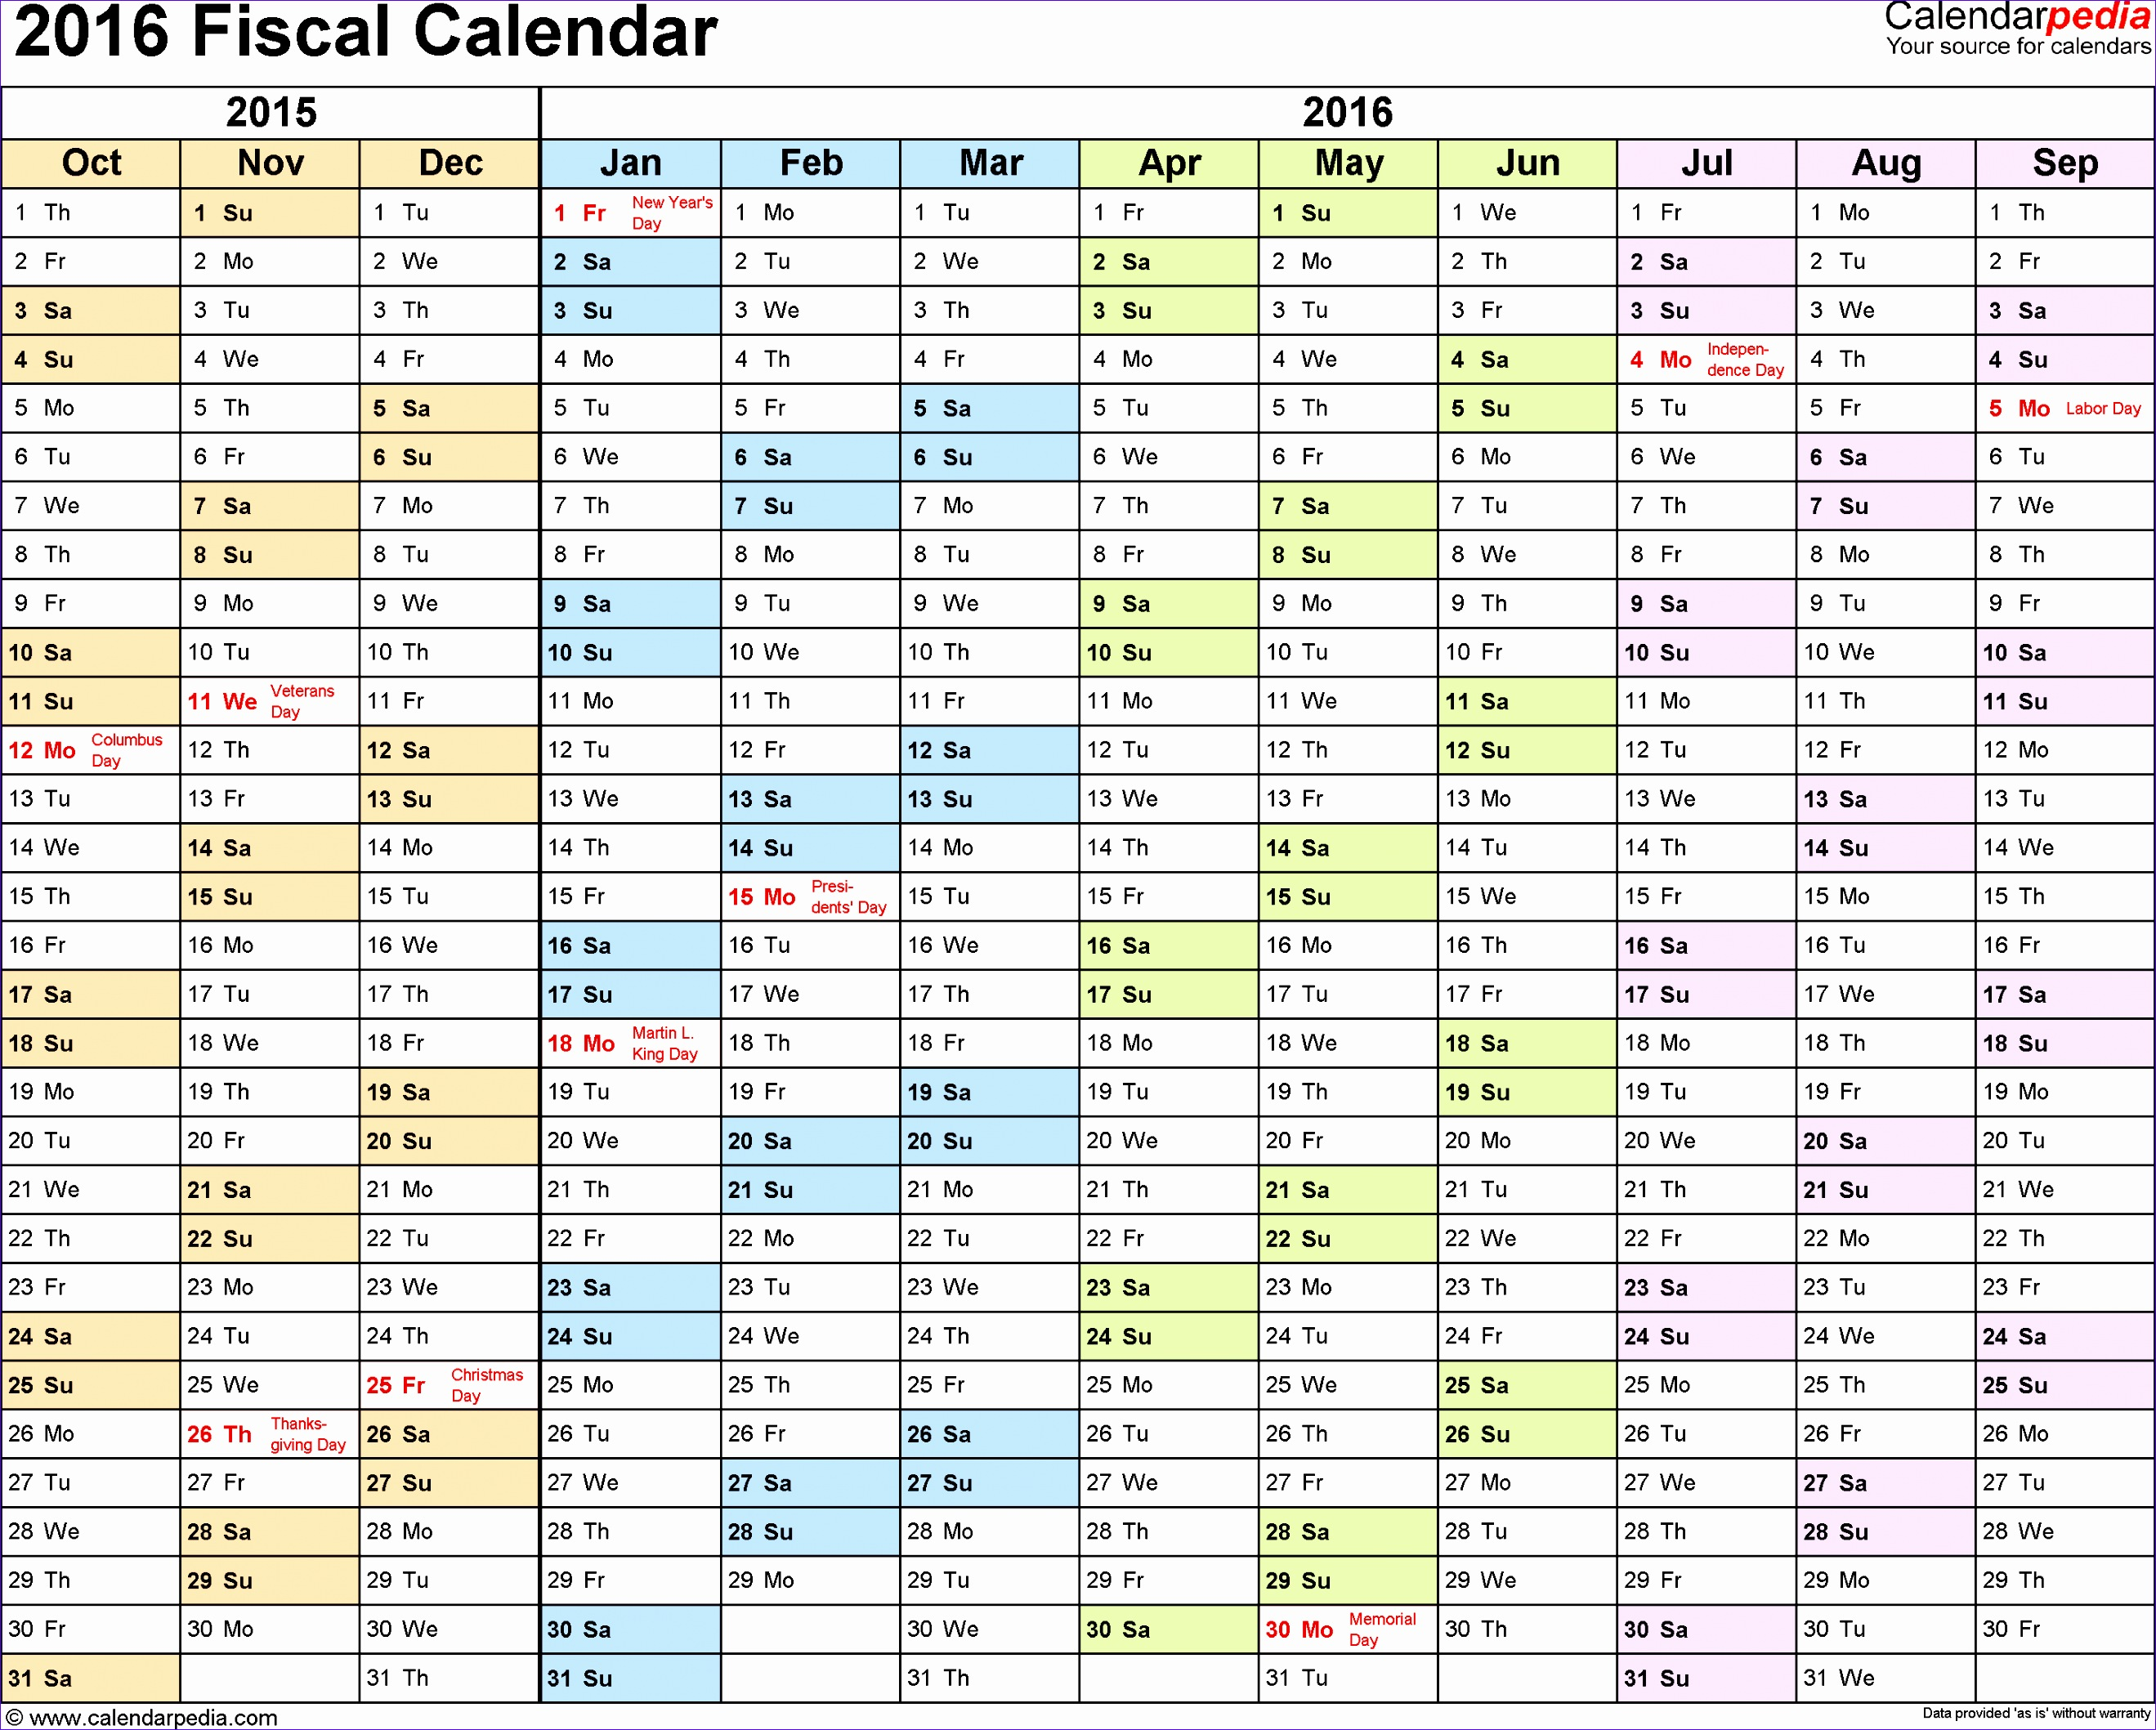 Excel Financial Statement Template E1yjr Lovely Fiscal Calendars 2016 as Free Printable Excel Templates